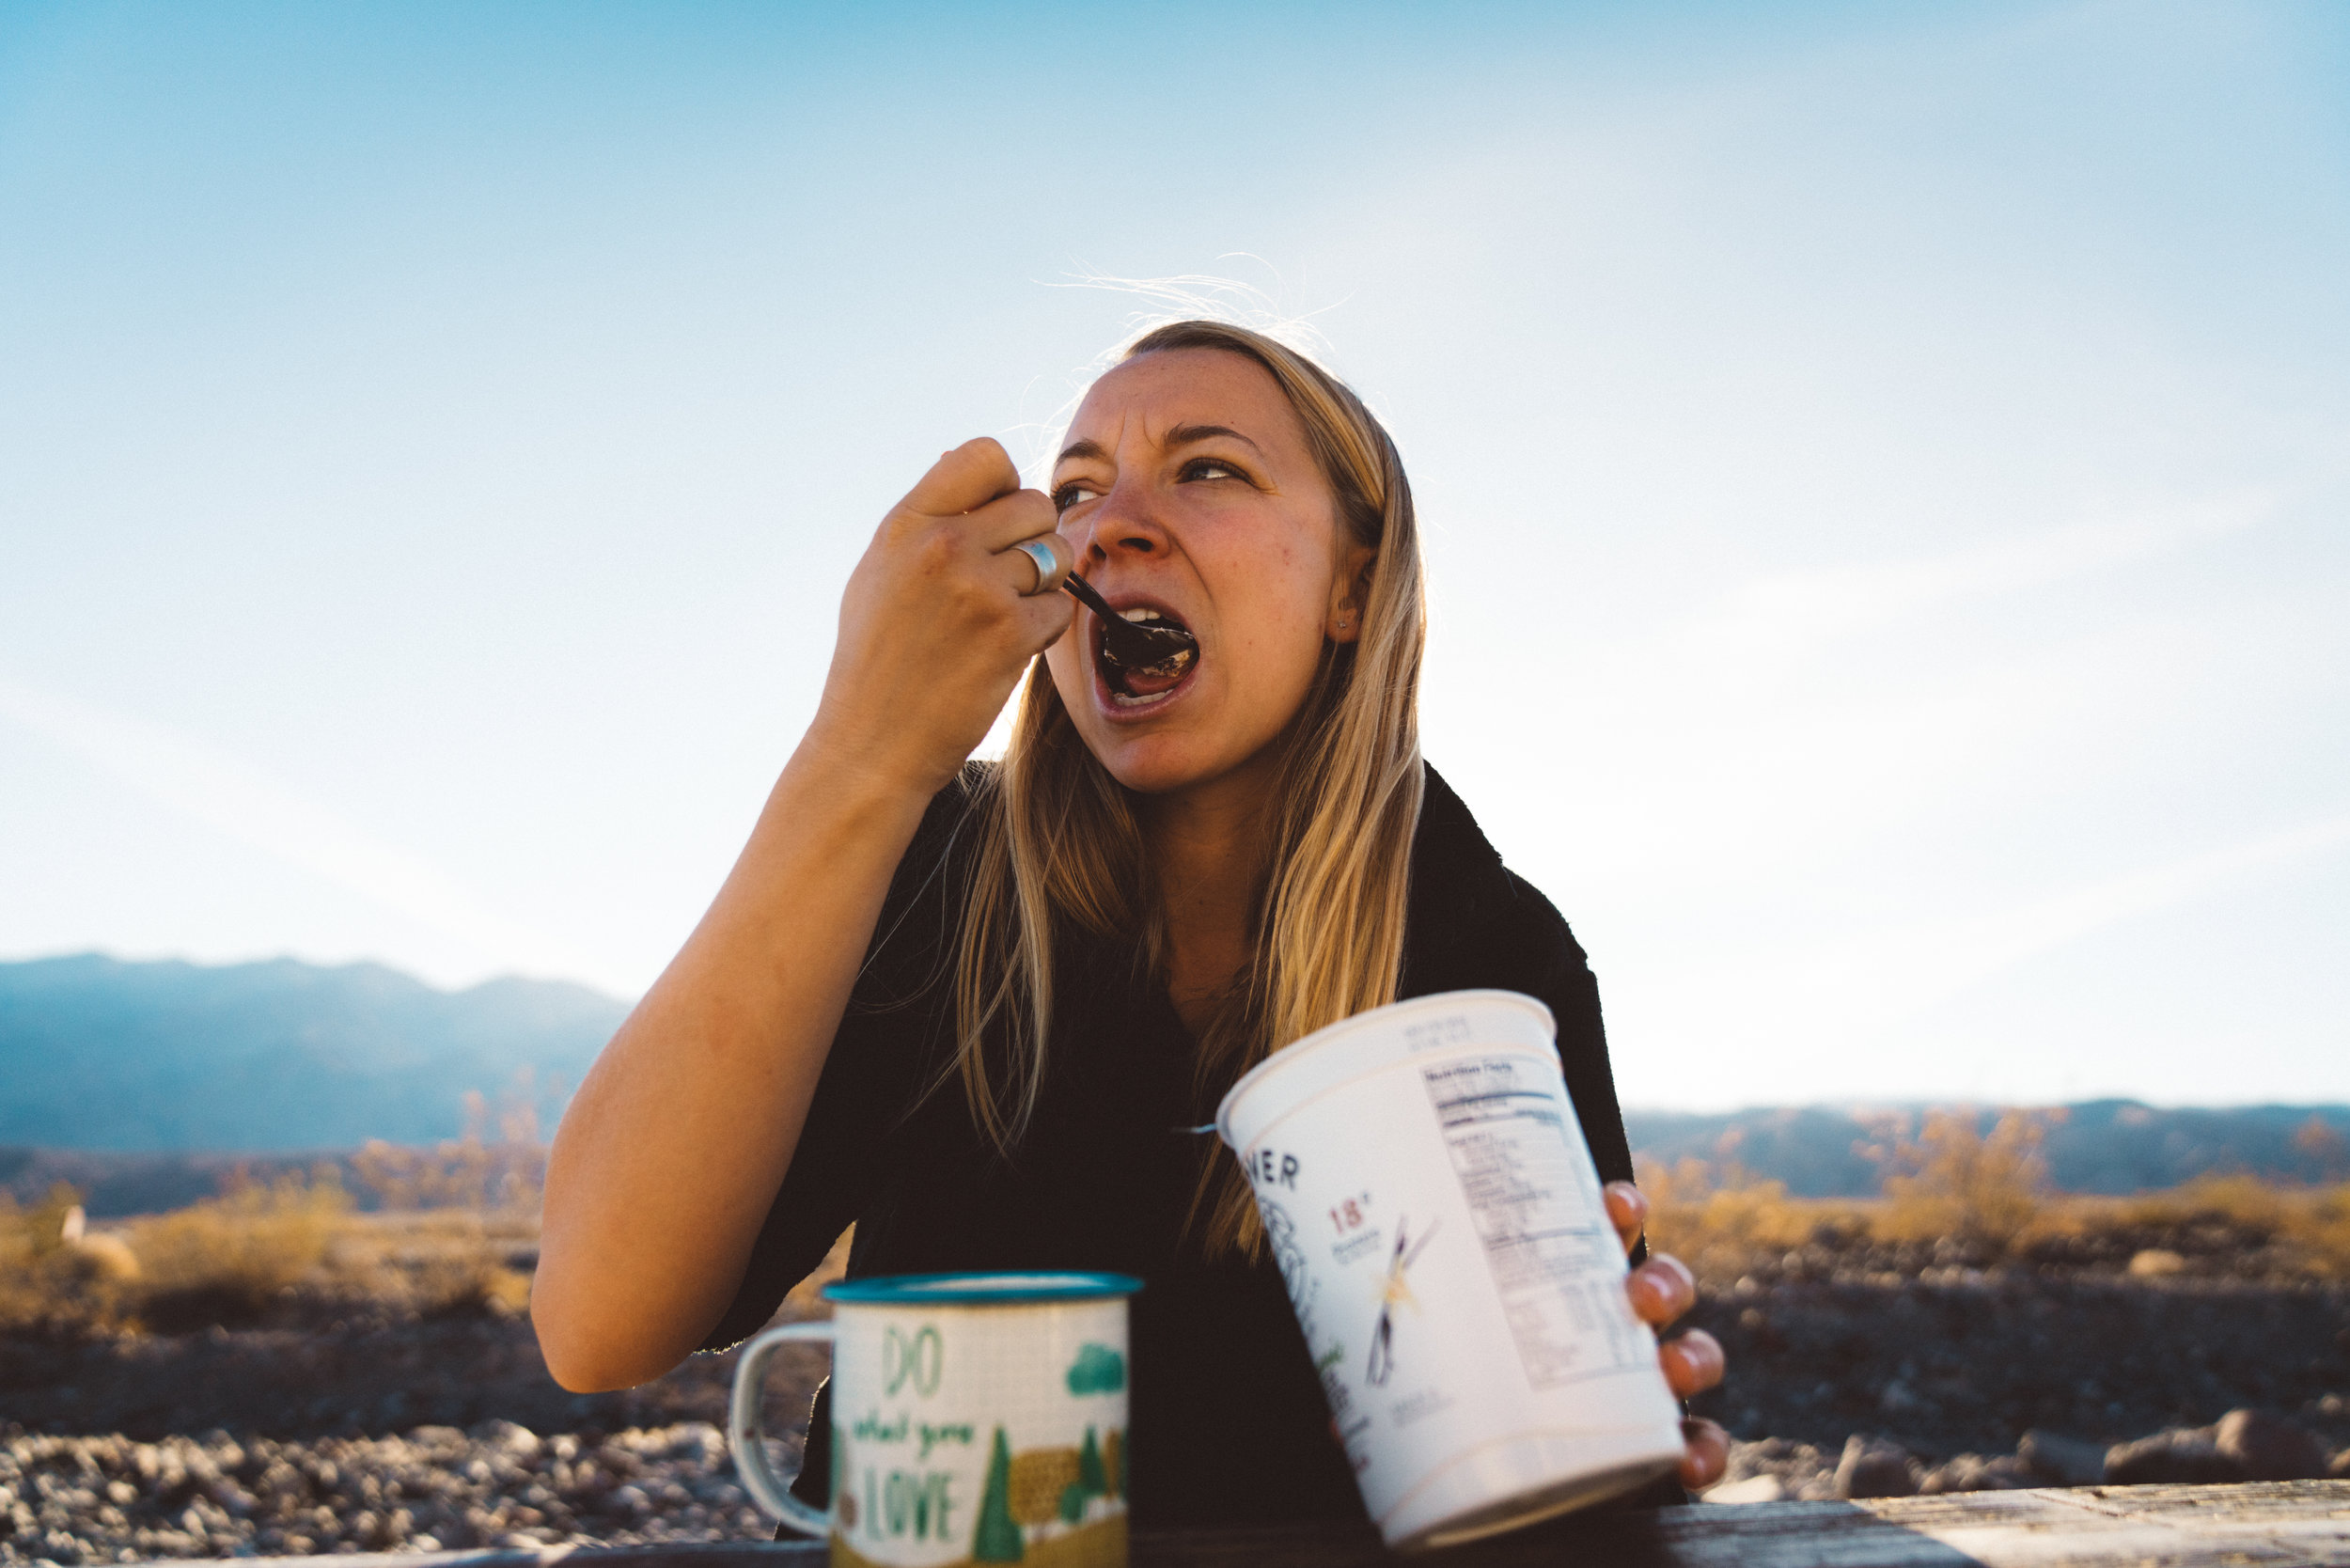 Danielle enjoying granola and yogurt for breakfast at Emigrant Campground.